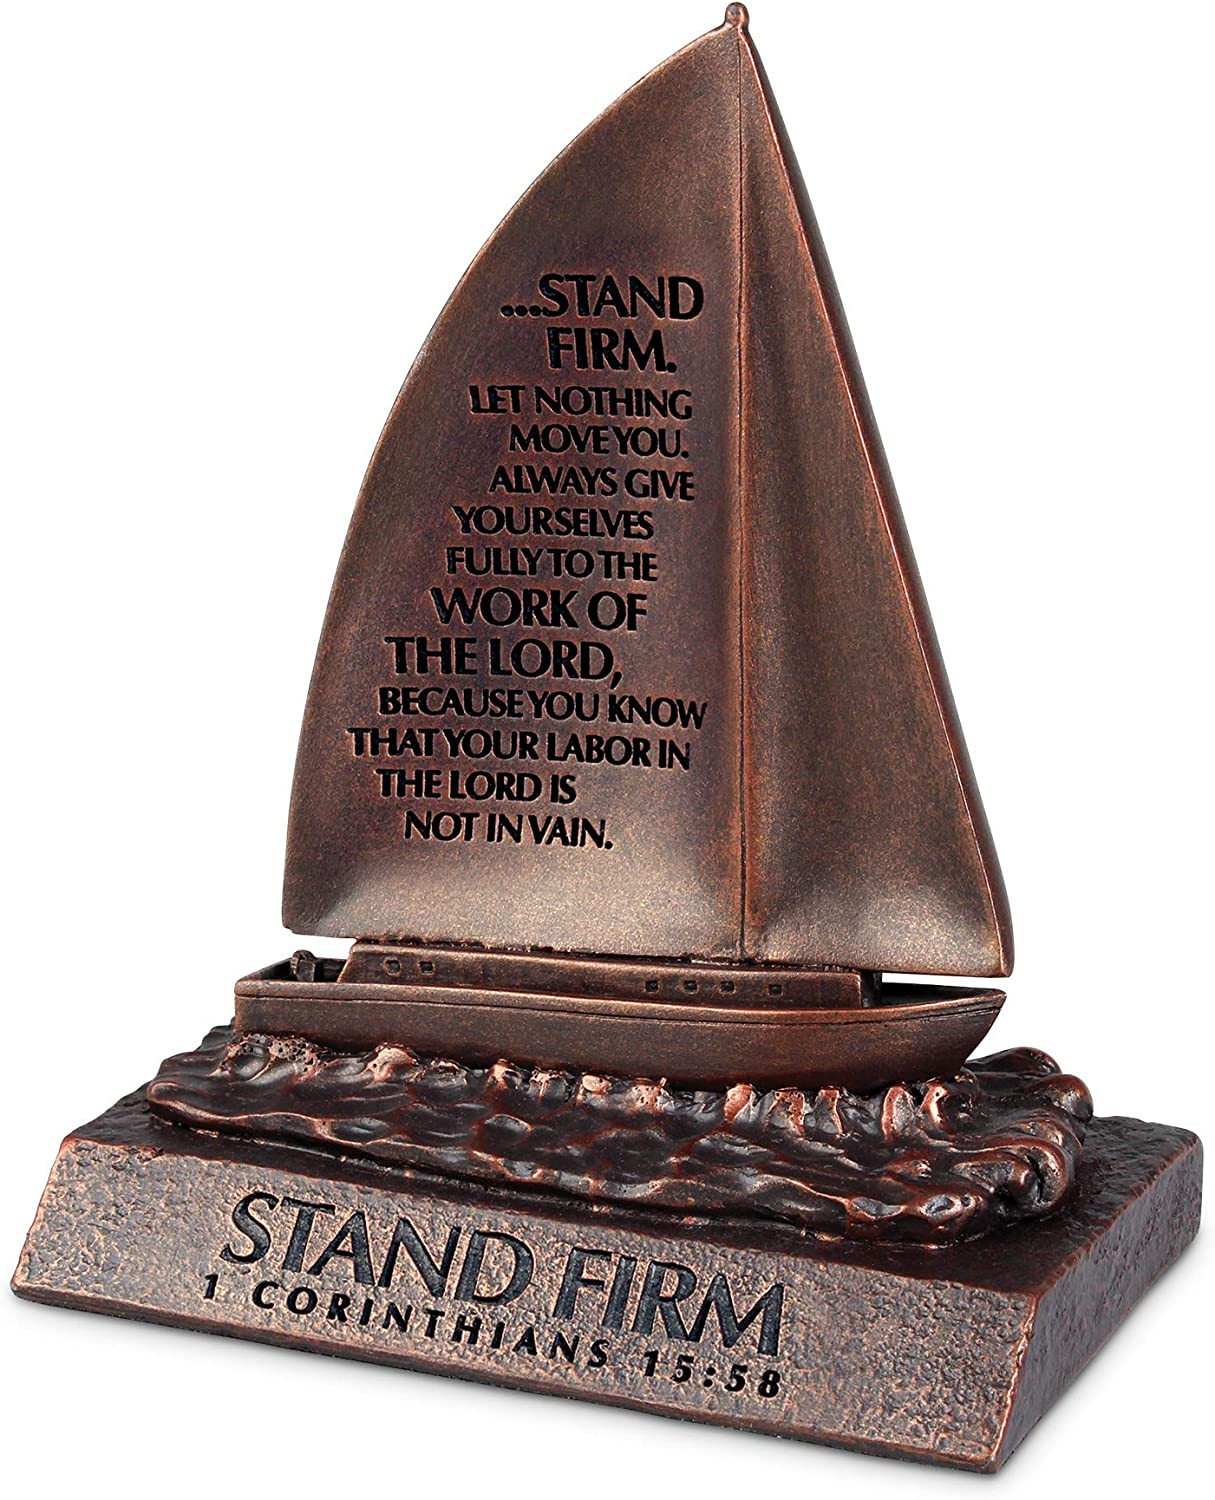 Lighthouse Christian Products Stand Firm Bronzelike Finish 4.5 x 5.25 Cast Stone Mounted Sculpture